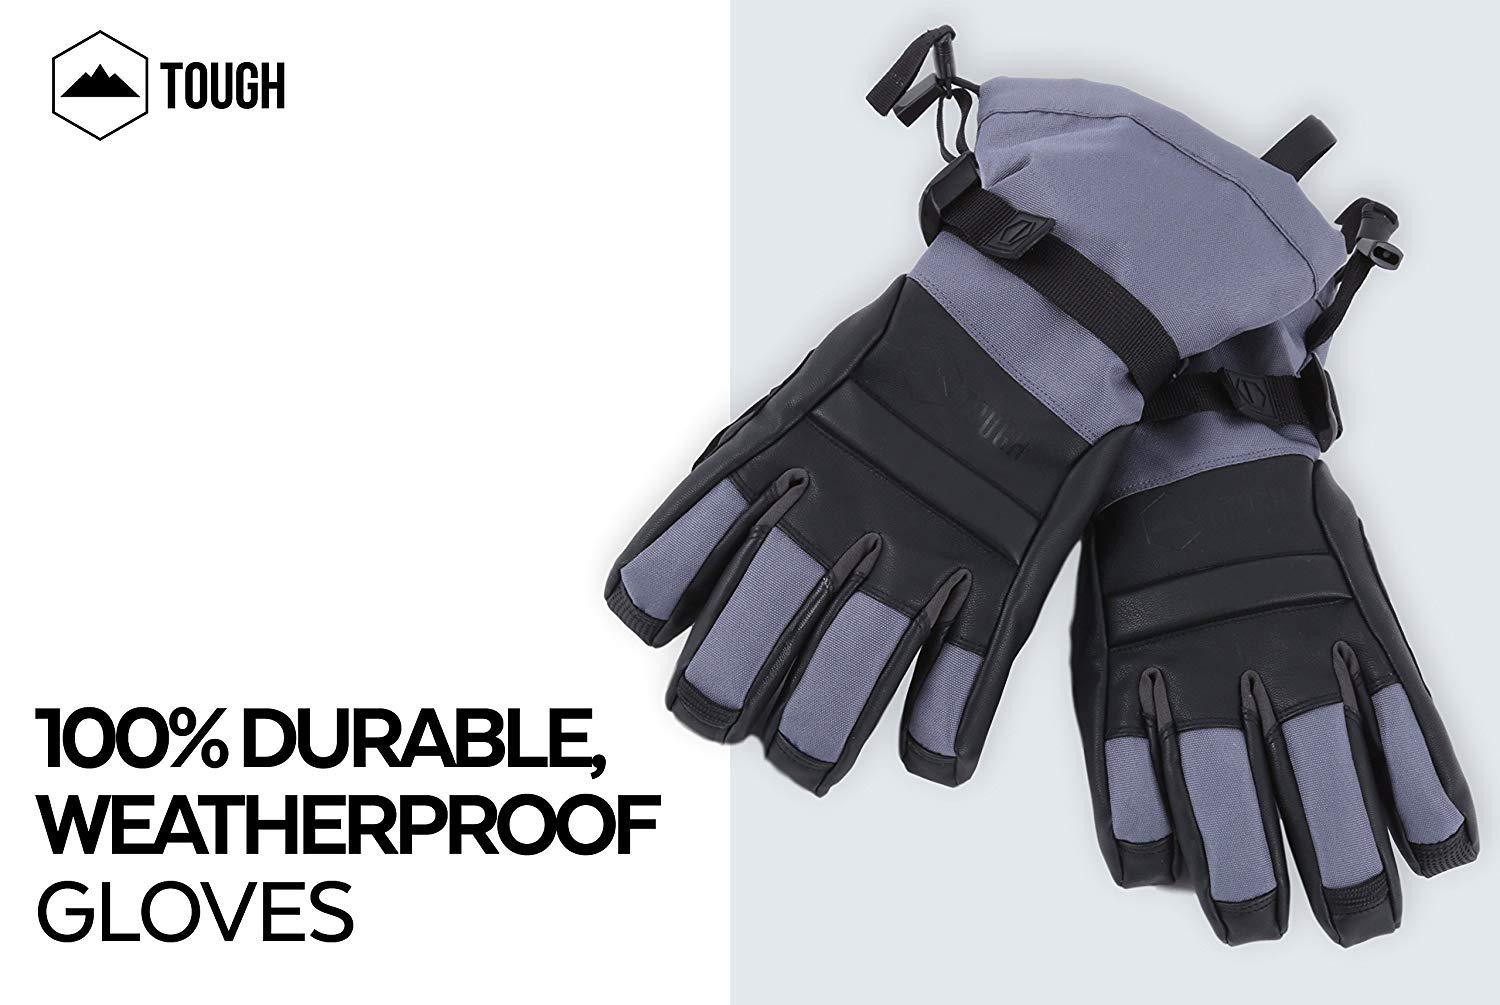 Fits Men /& Women Shoveling Touchscreen Compatible Gray Shredder Ski /& Snowboard Glove Designed for Skiing Snowboarding Waterproof Gloves with Synthetic Leather Shell Construction